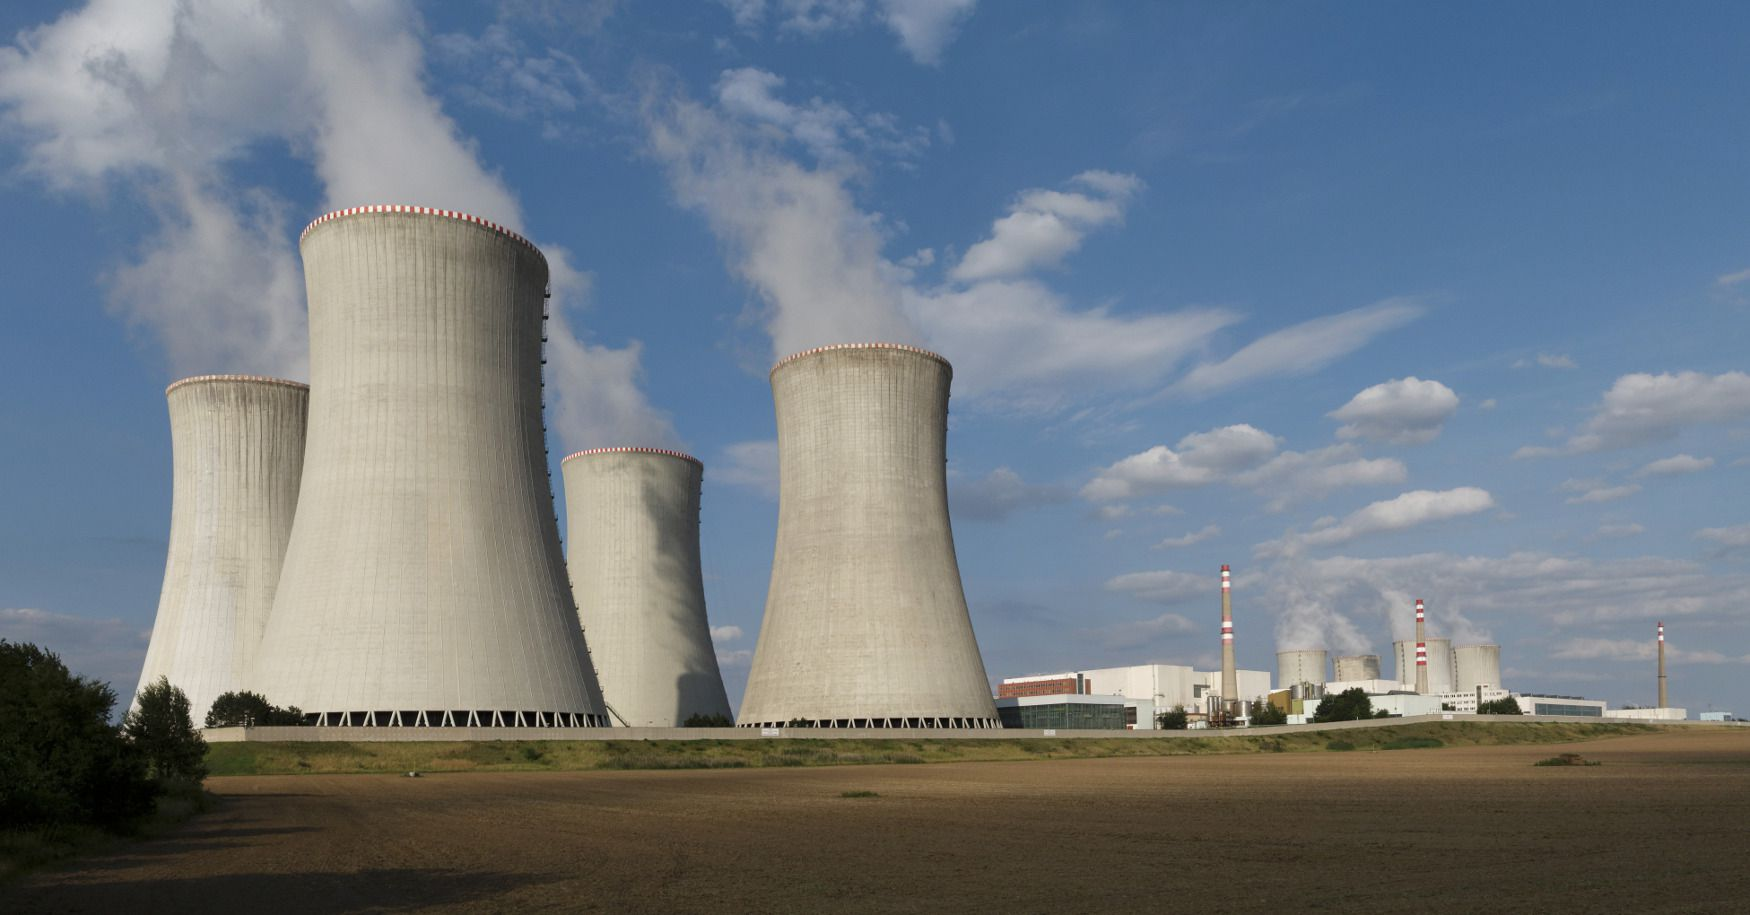 Nuclear Power Plant Using SA's Power Mix